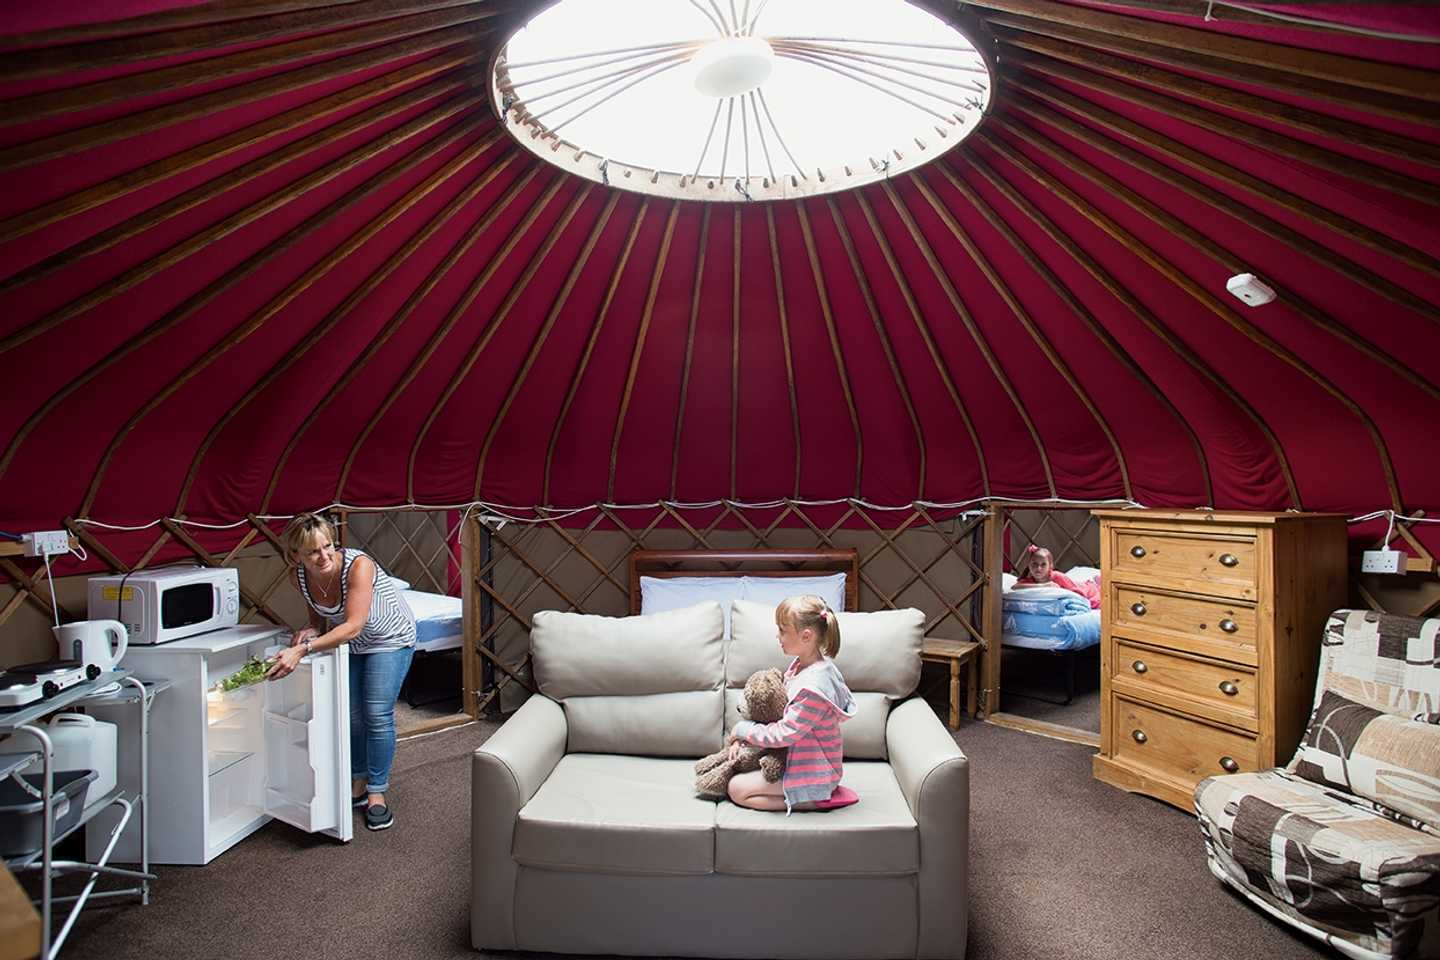 Family relaxing in a yurt